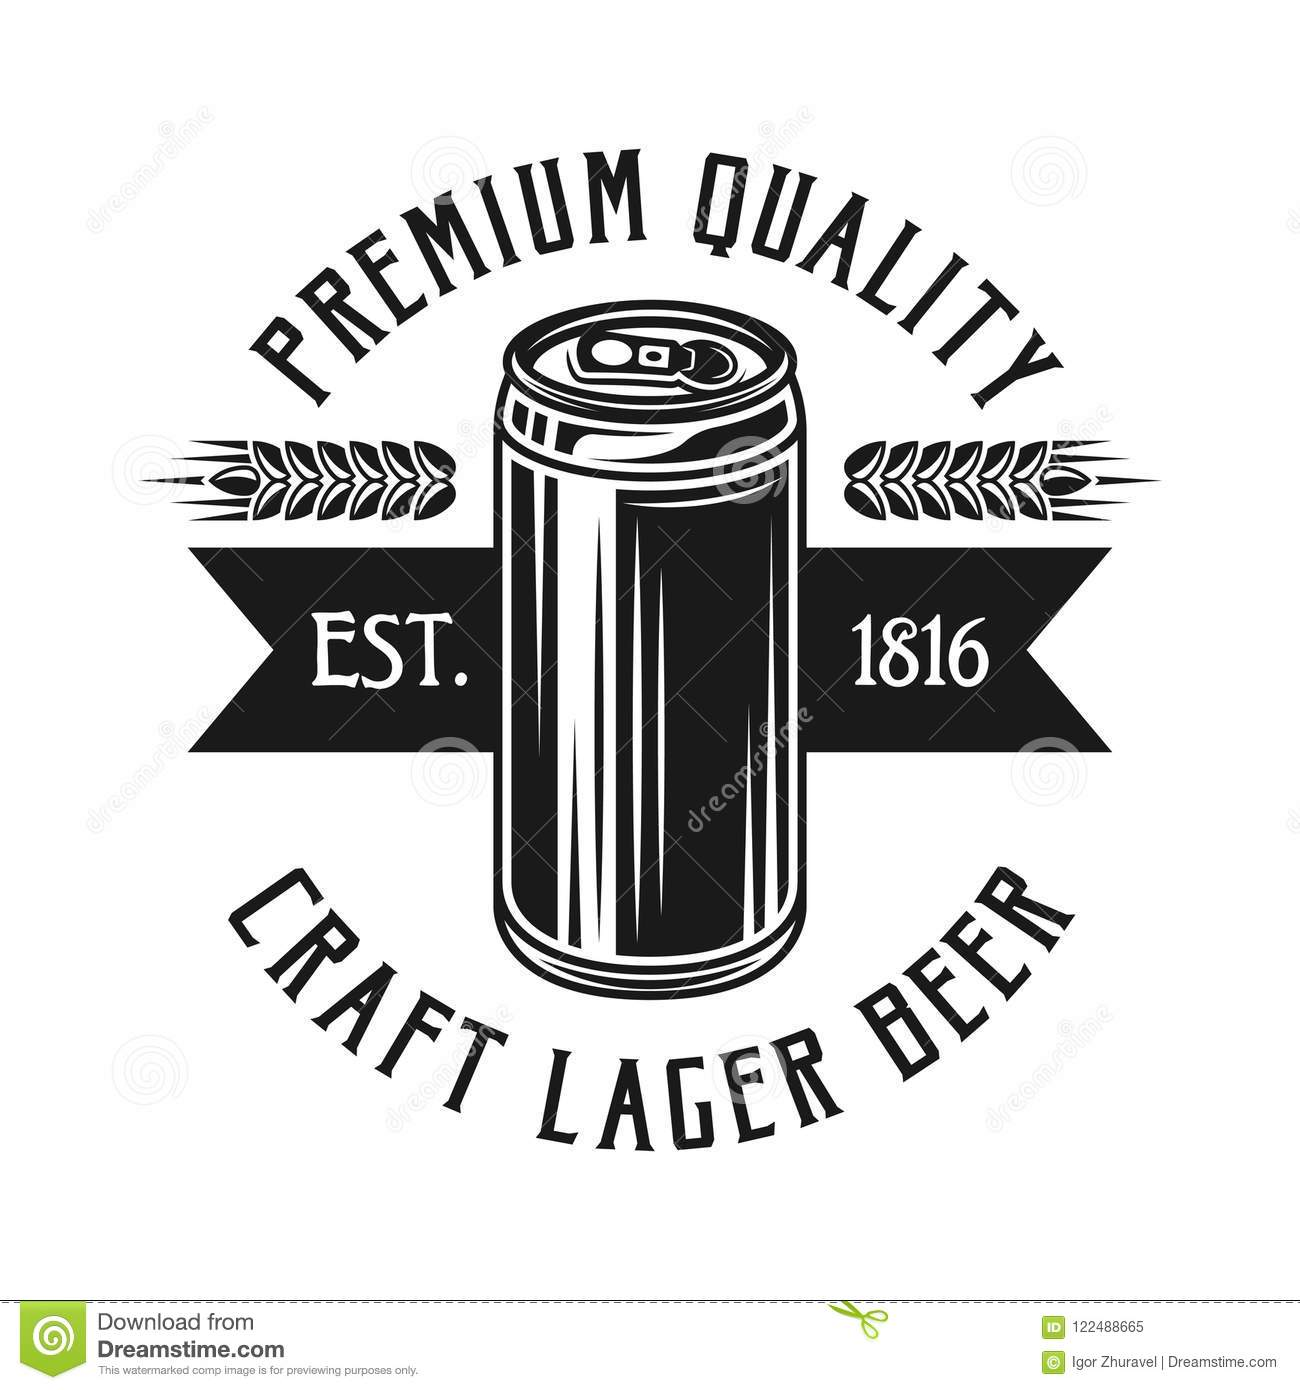 It is a graphic of Challenger Black Label Beer Logo